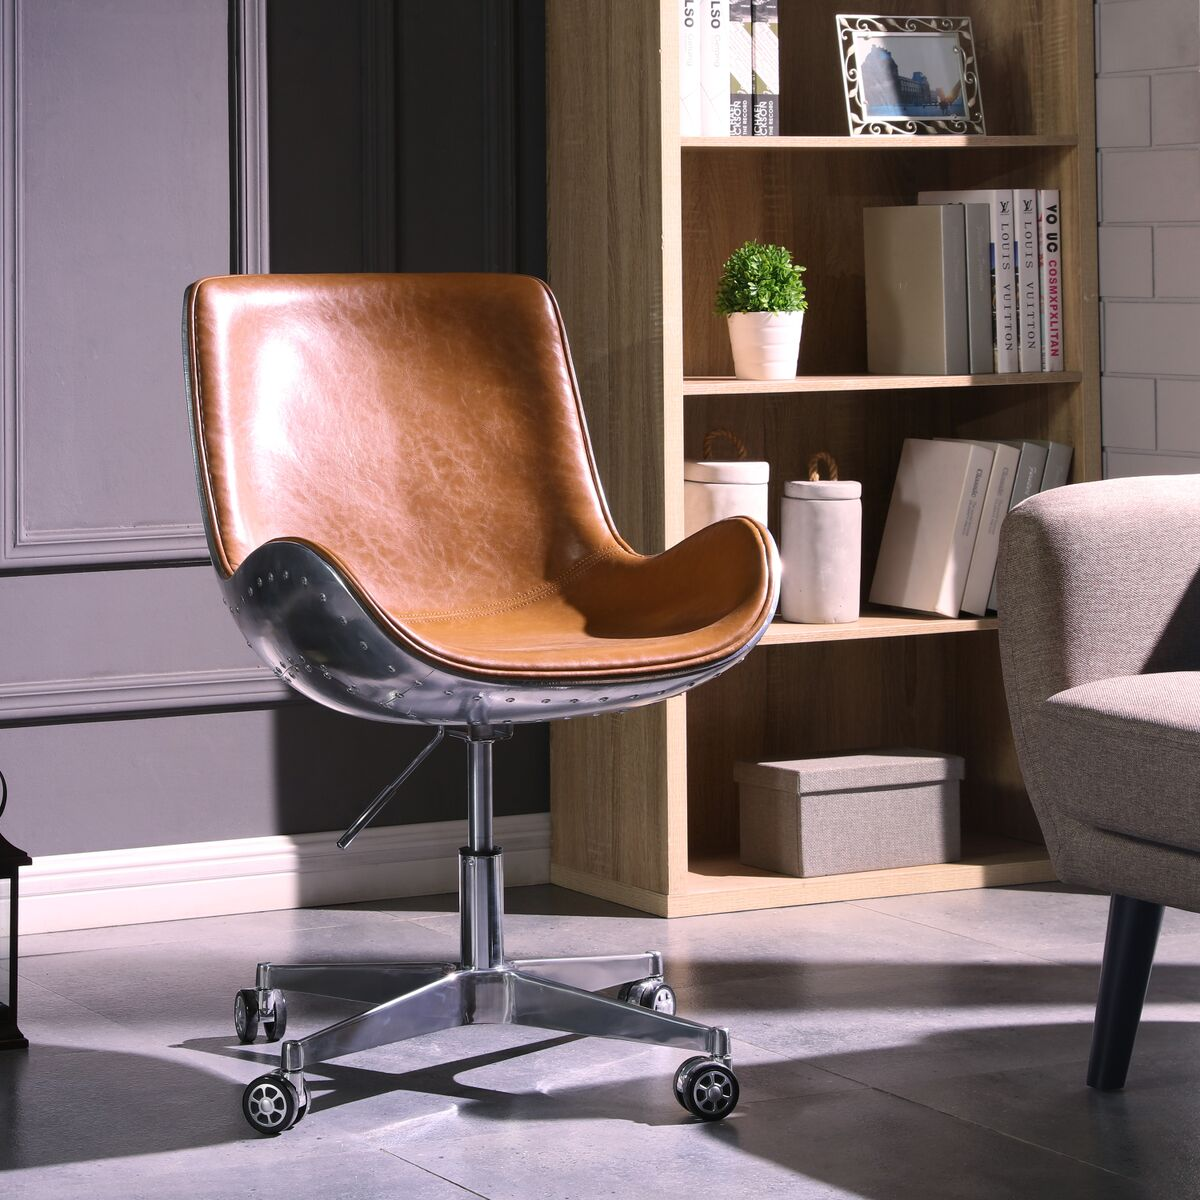 Stylish Java Brown Office Chair in Scoop Style – ComputerDesk.com